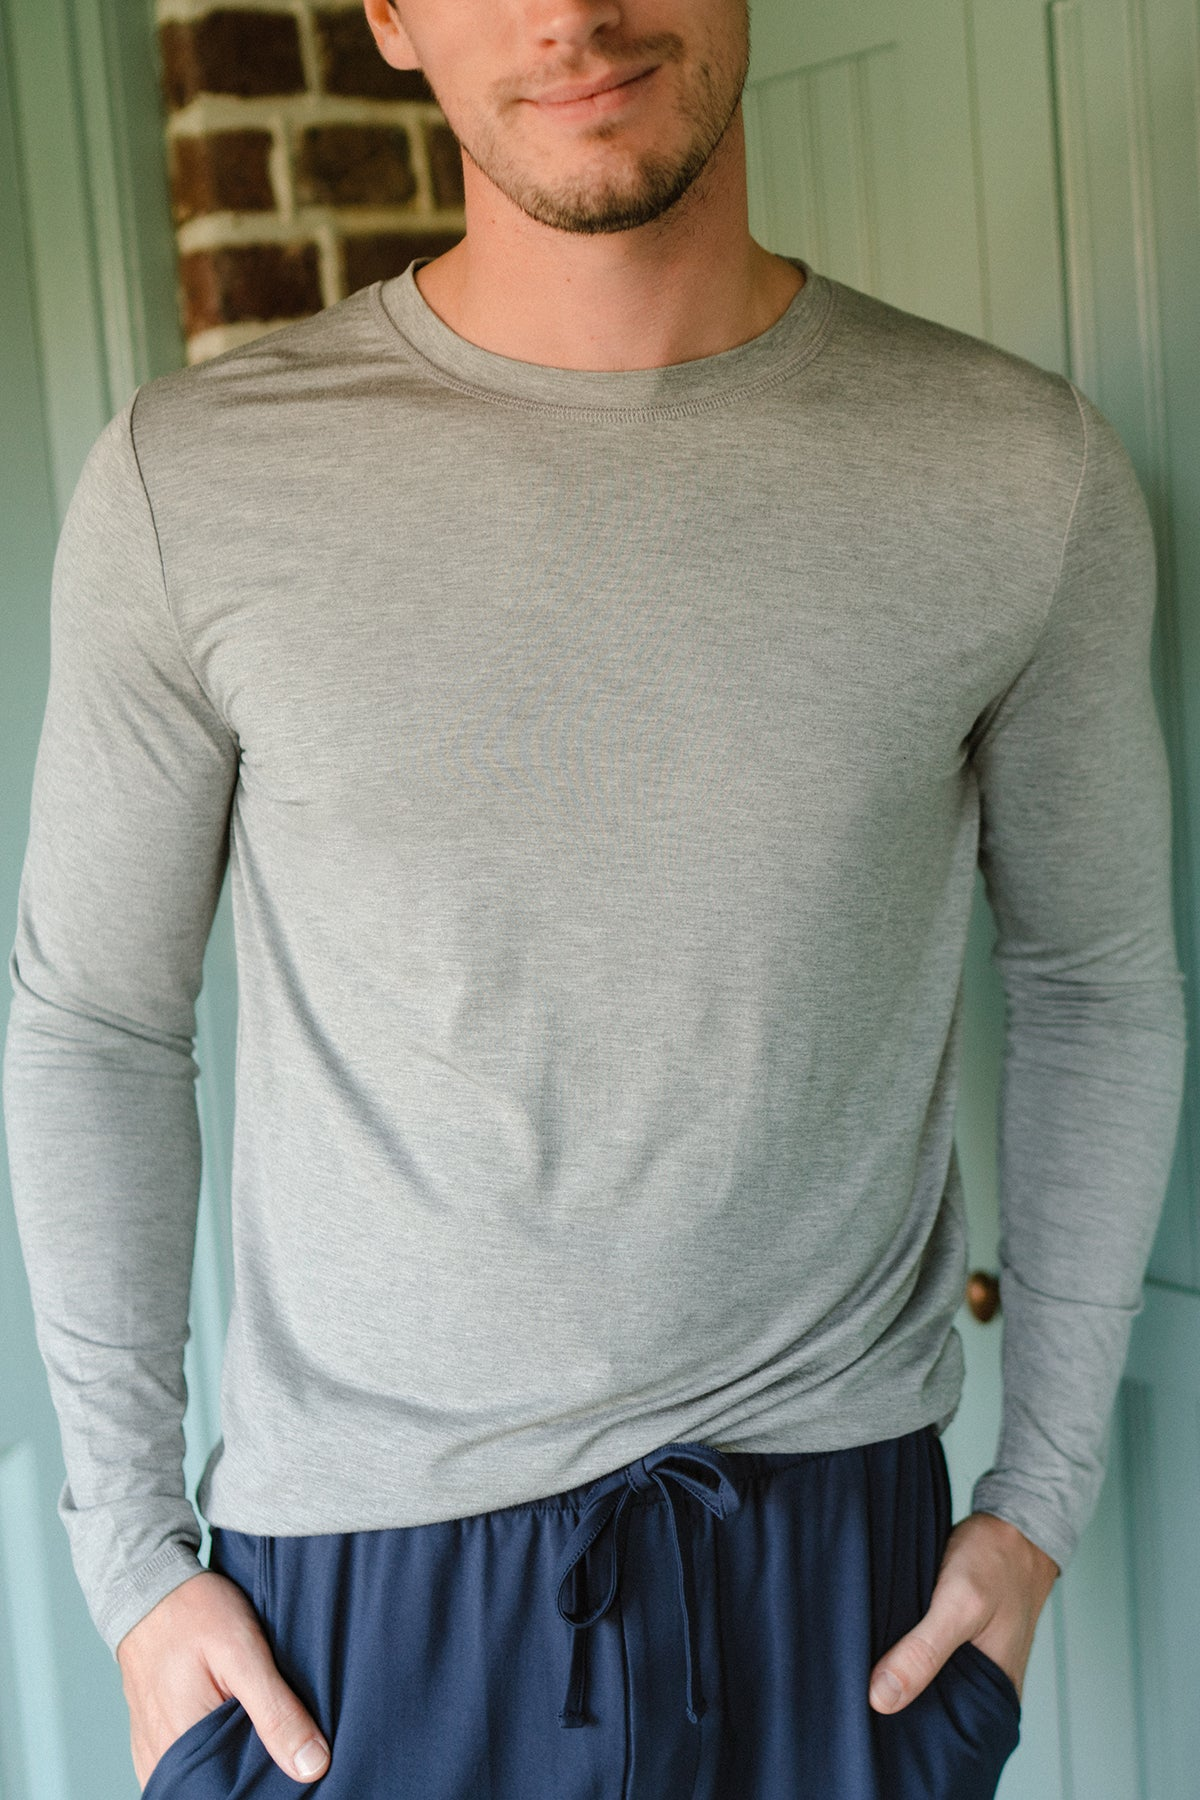 Men's Long Sleeve Bamboo Tee in Heather Gray